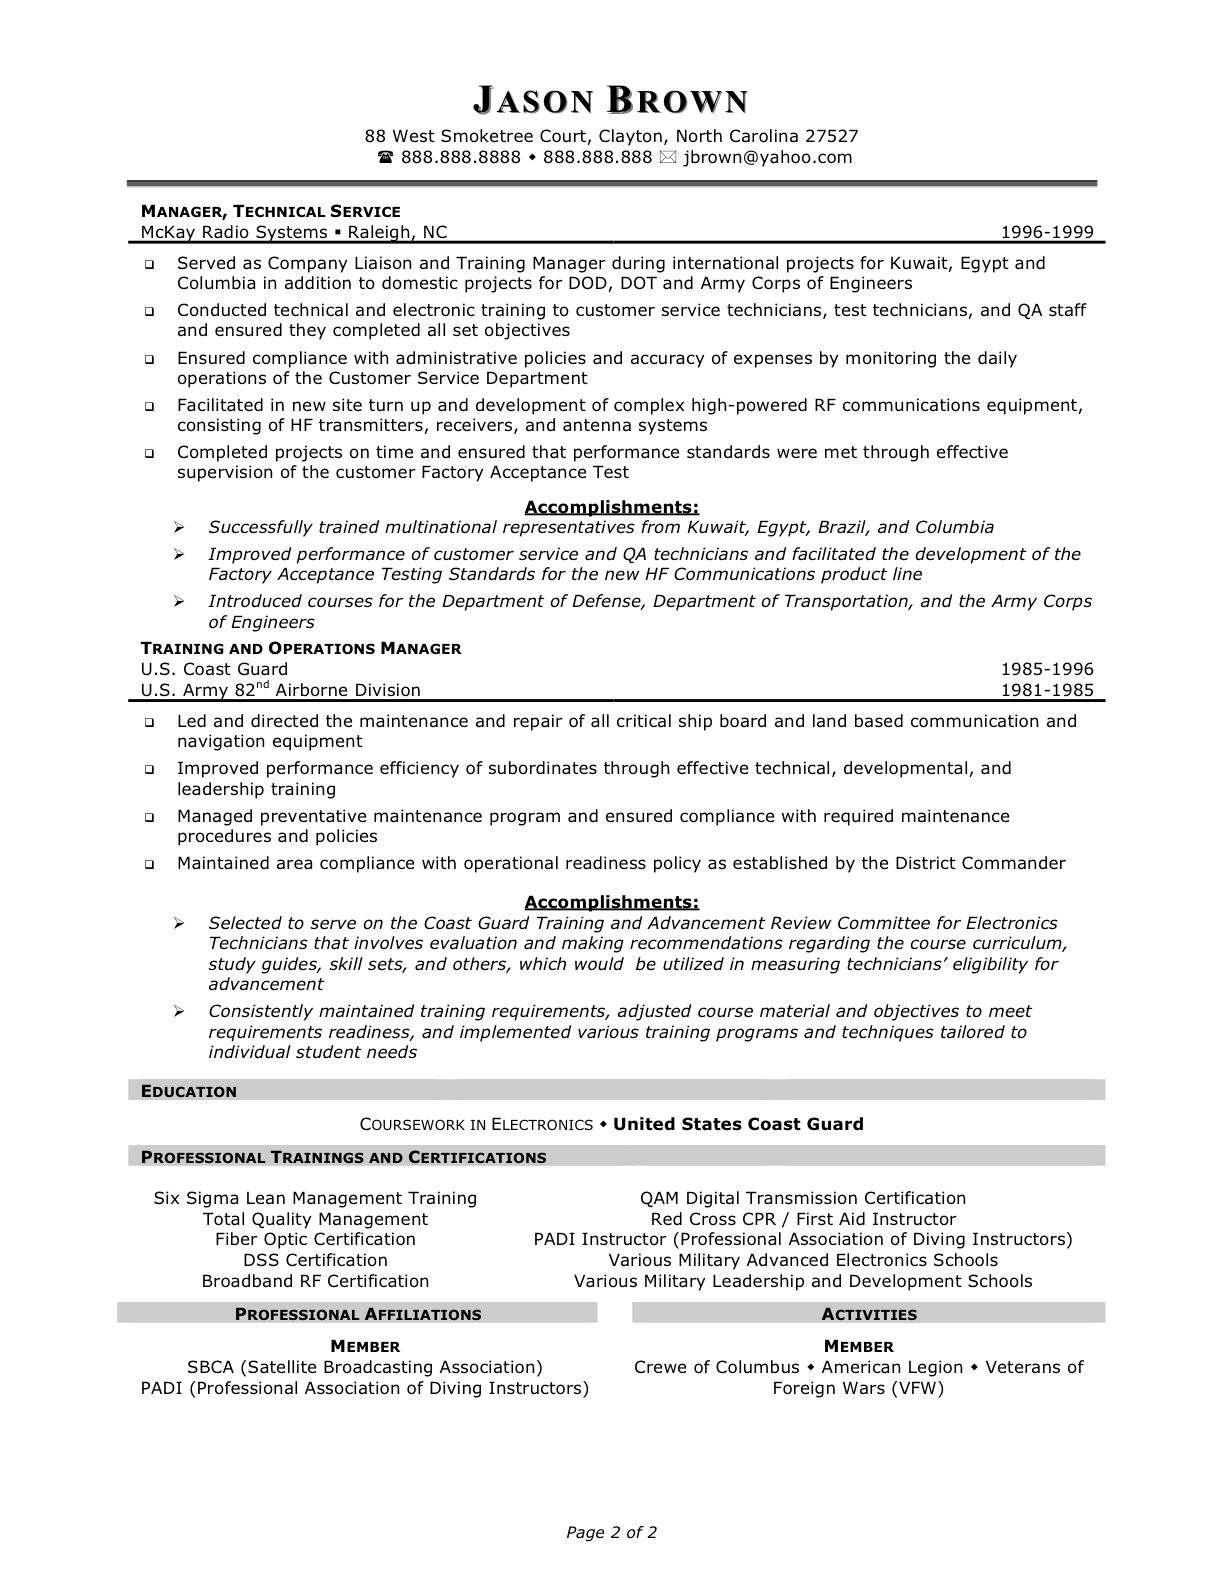 Blank Resume Templates Enterprise Management Trainee Program Resume  Httpwww